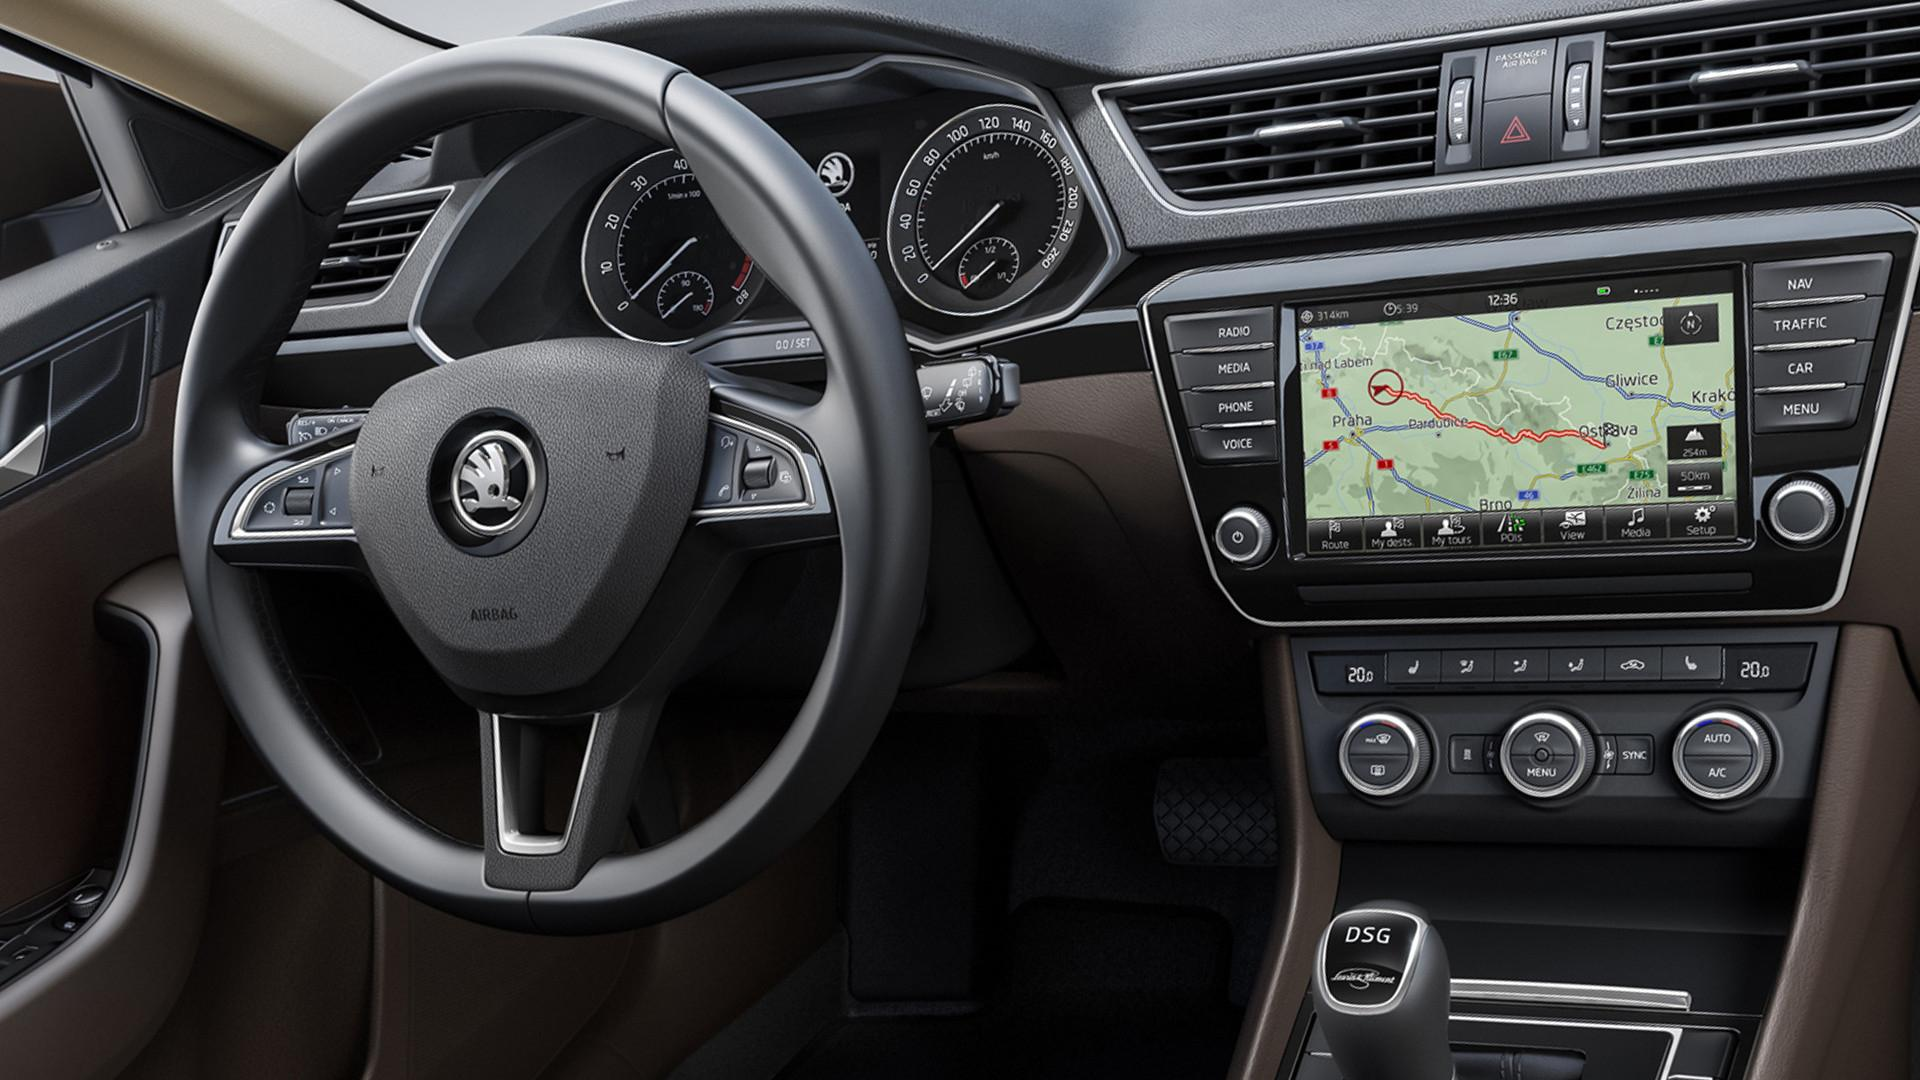 New Skoda Octavia 2019 Interior Wallpapers : New Release Car